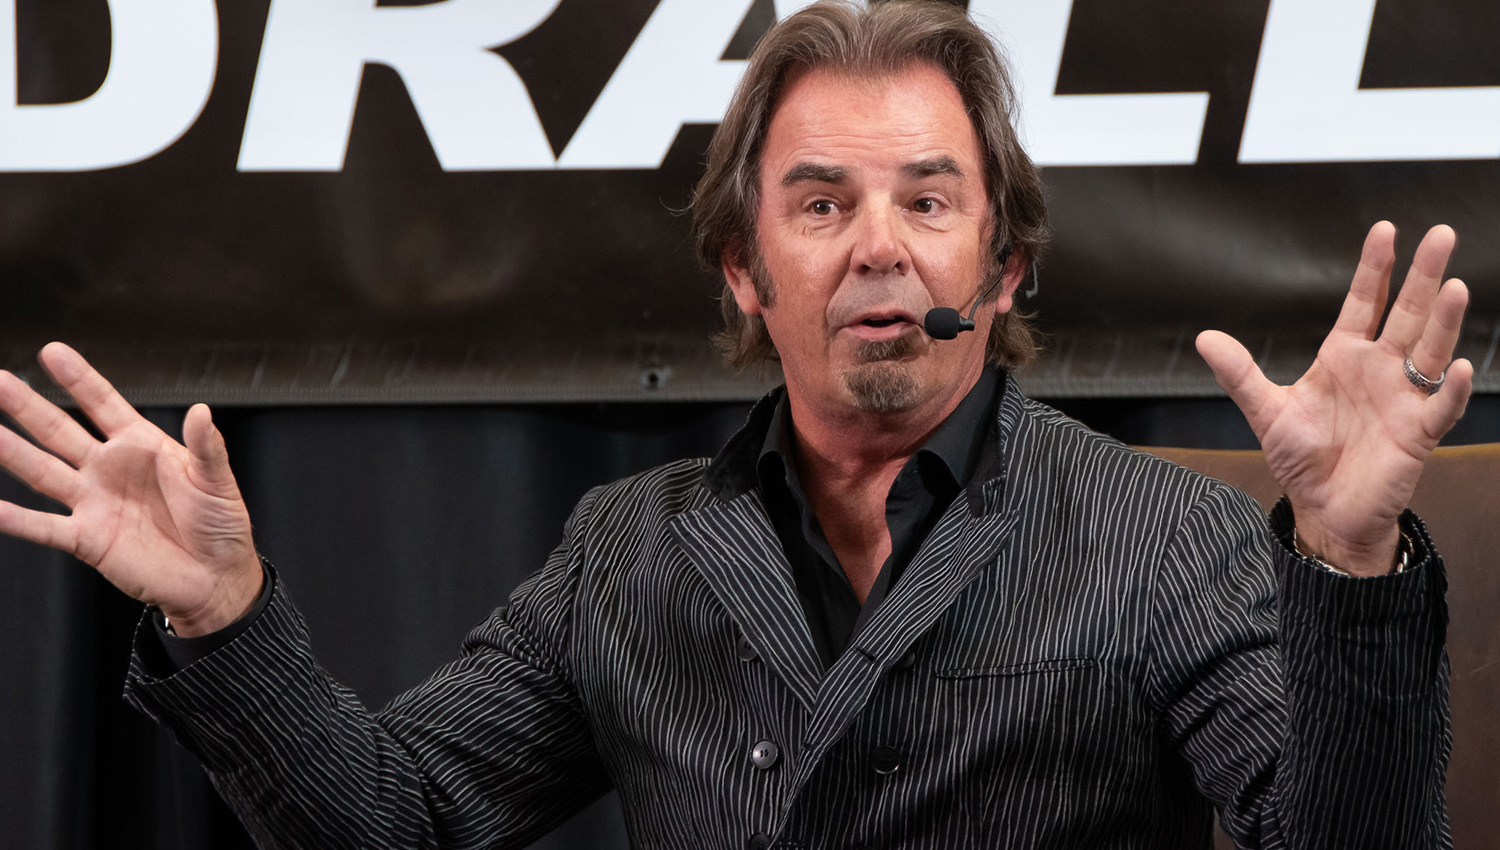 Jonathan Cain was incredibly inspirational with his heartfelt message about never giving up and believing in yourself.